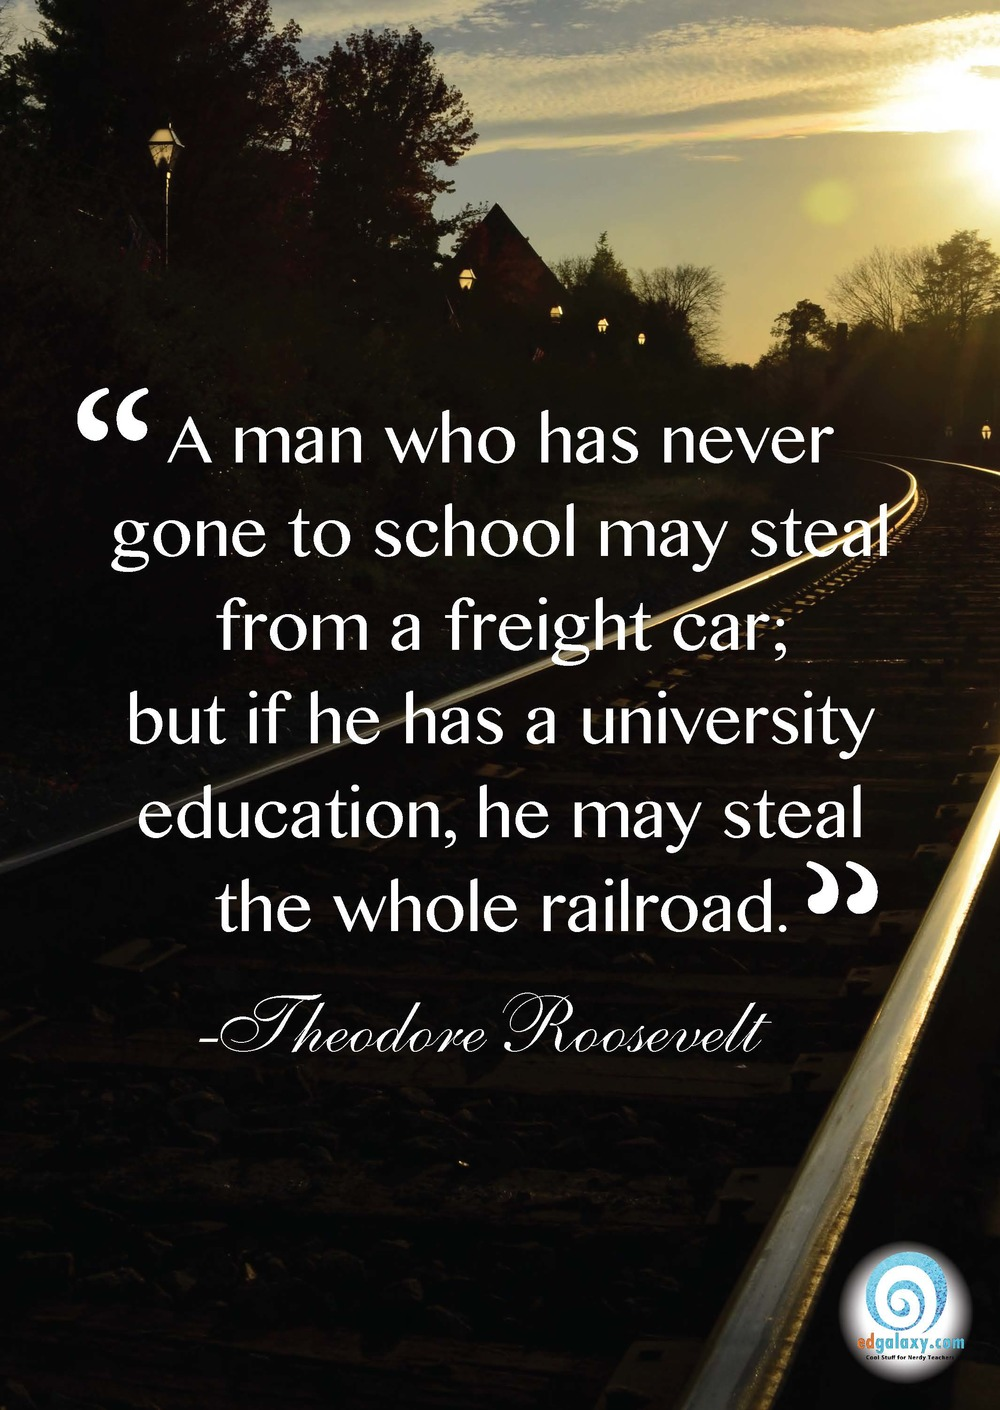 Educational Inspirational Quotes Education Quotes  Famous Quotes For Teachers And Students